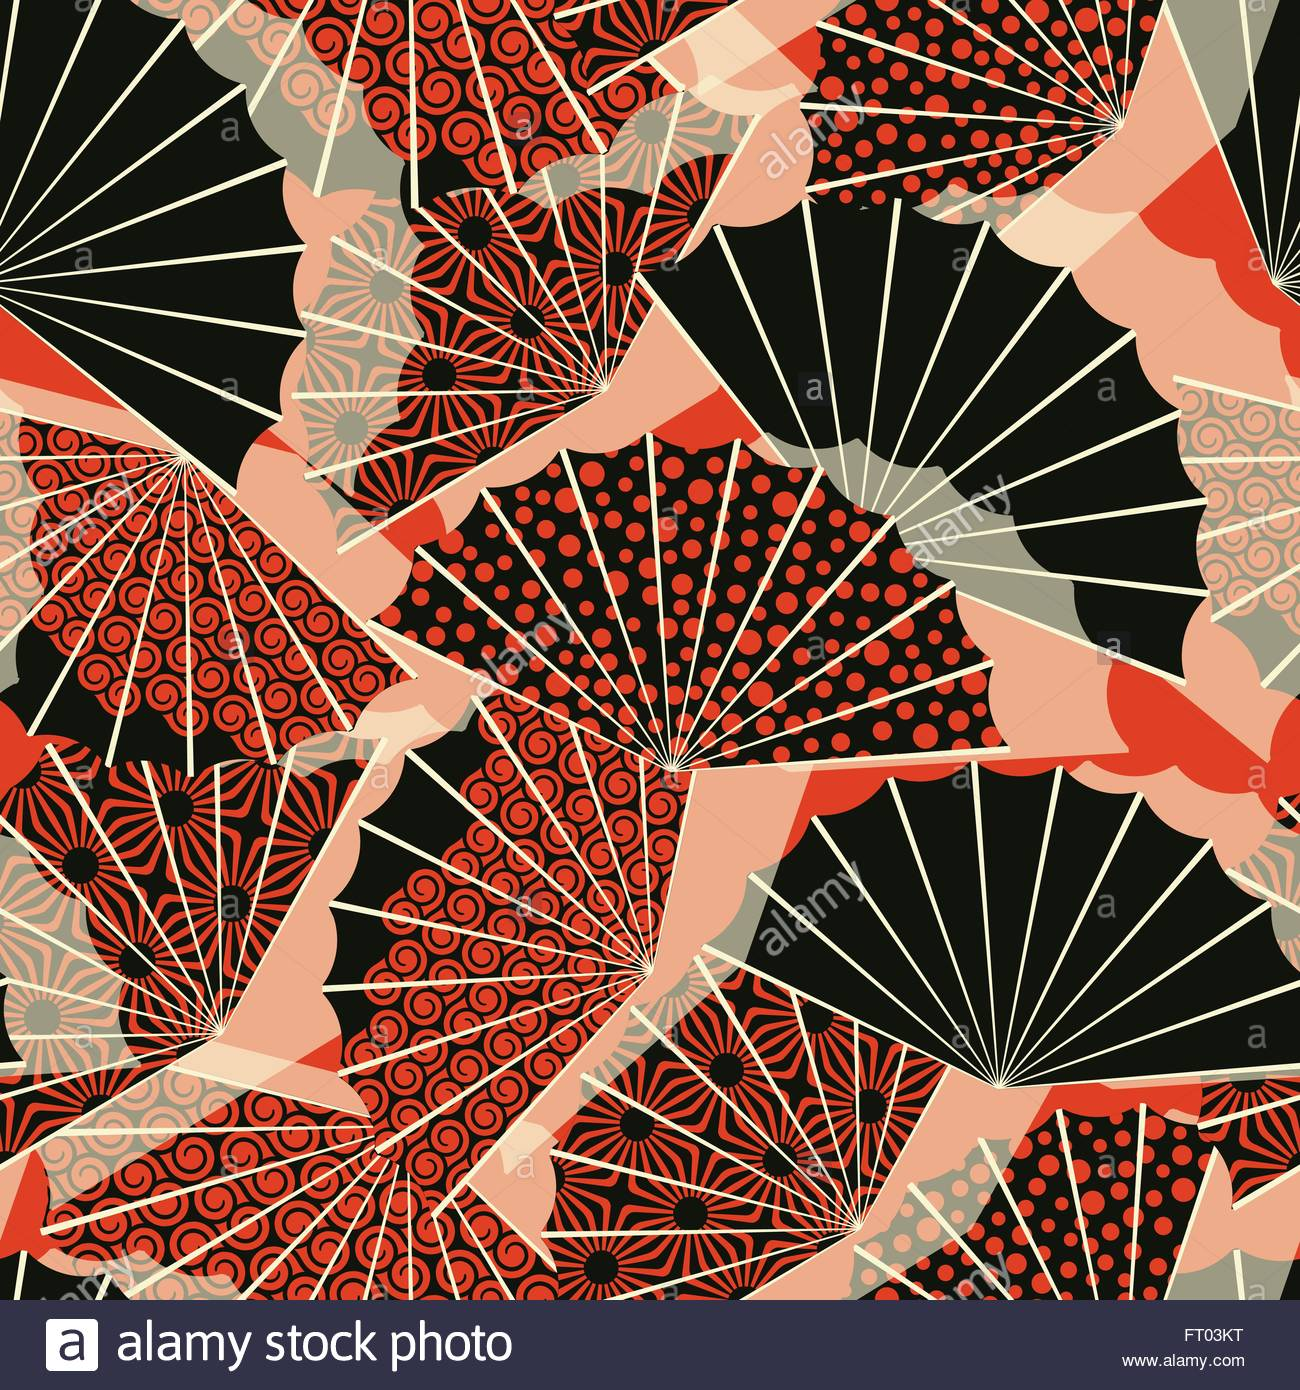 a japanese style fan shape seamless pattern with 3 different stock vector a japanese style fan shape seamless pattern with 3 different decorations in a orange and black palette